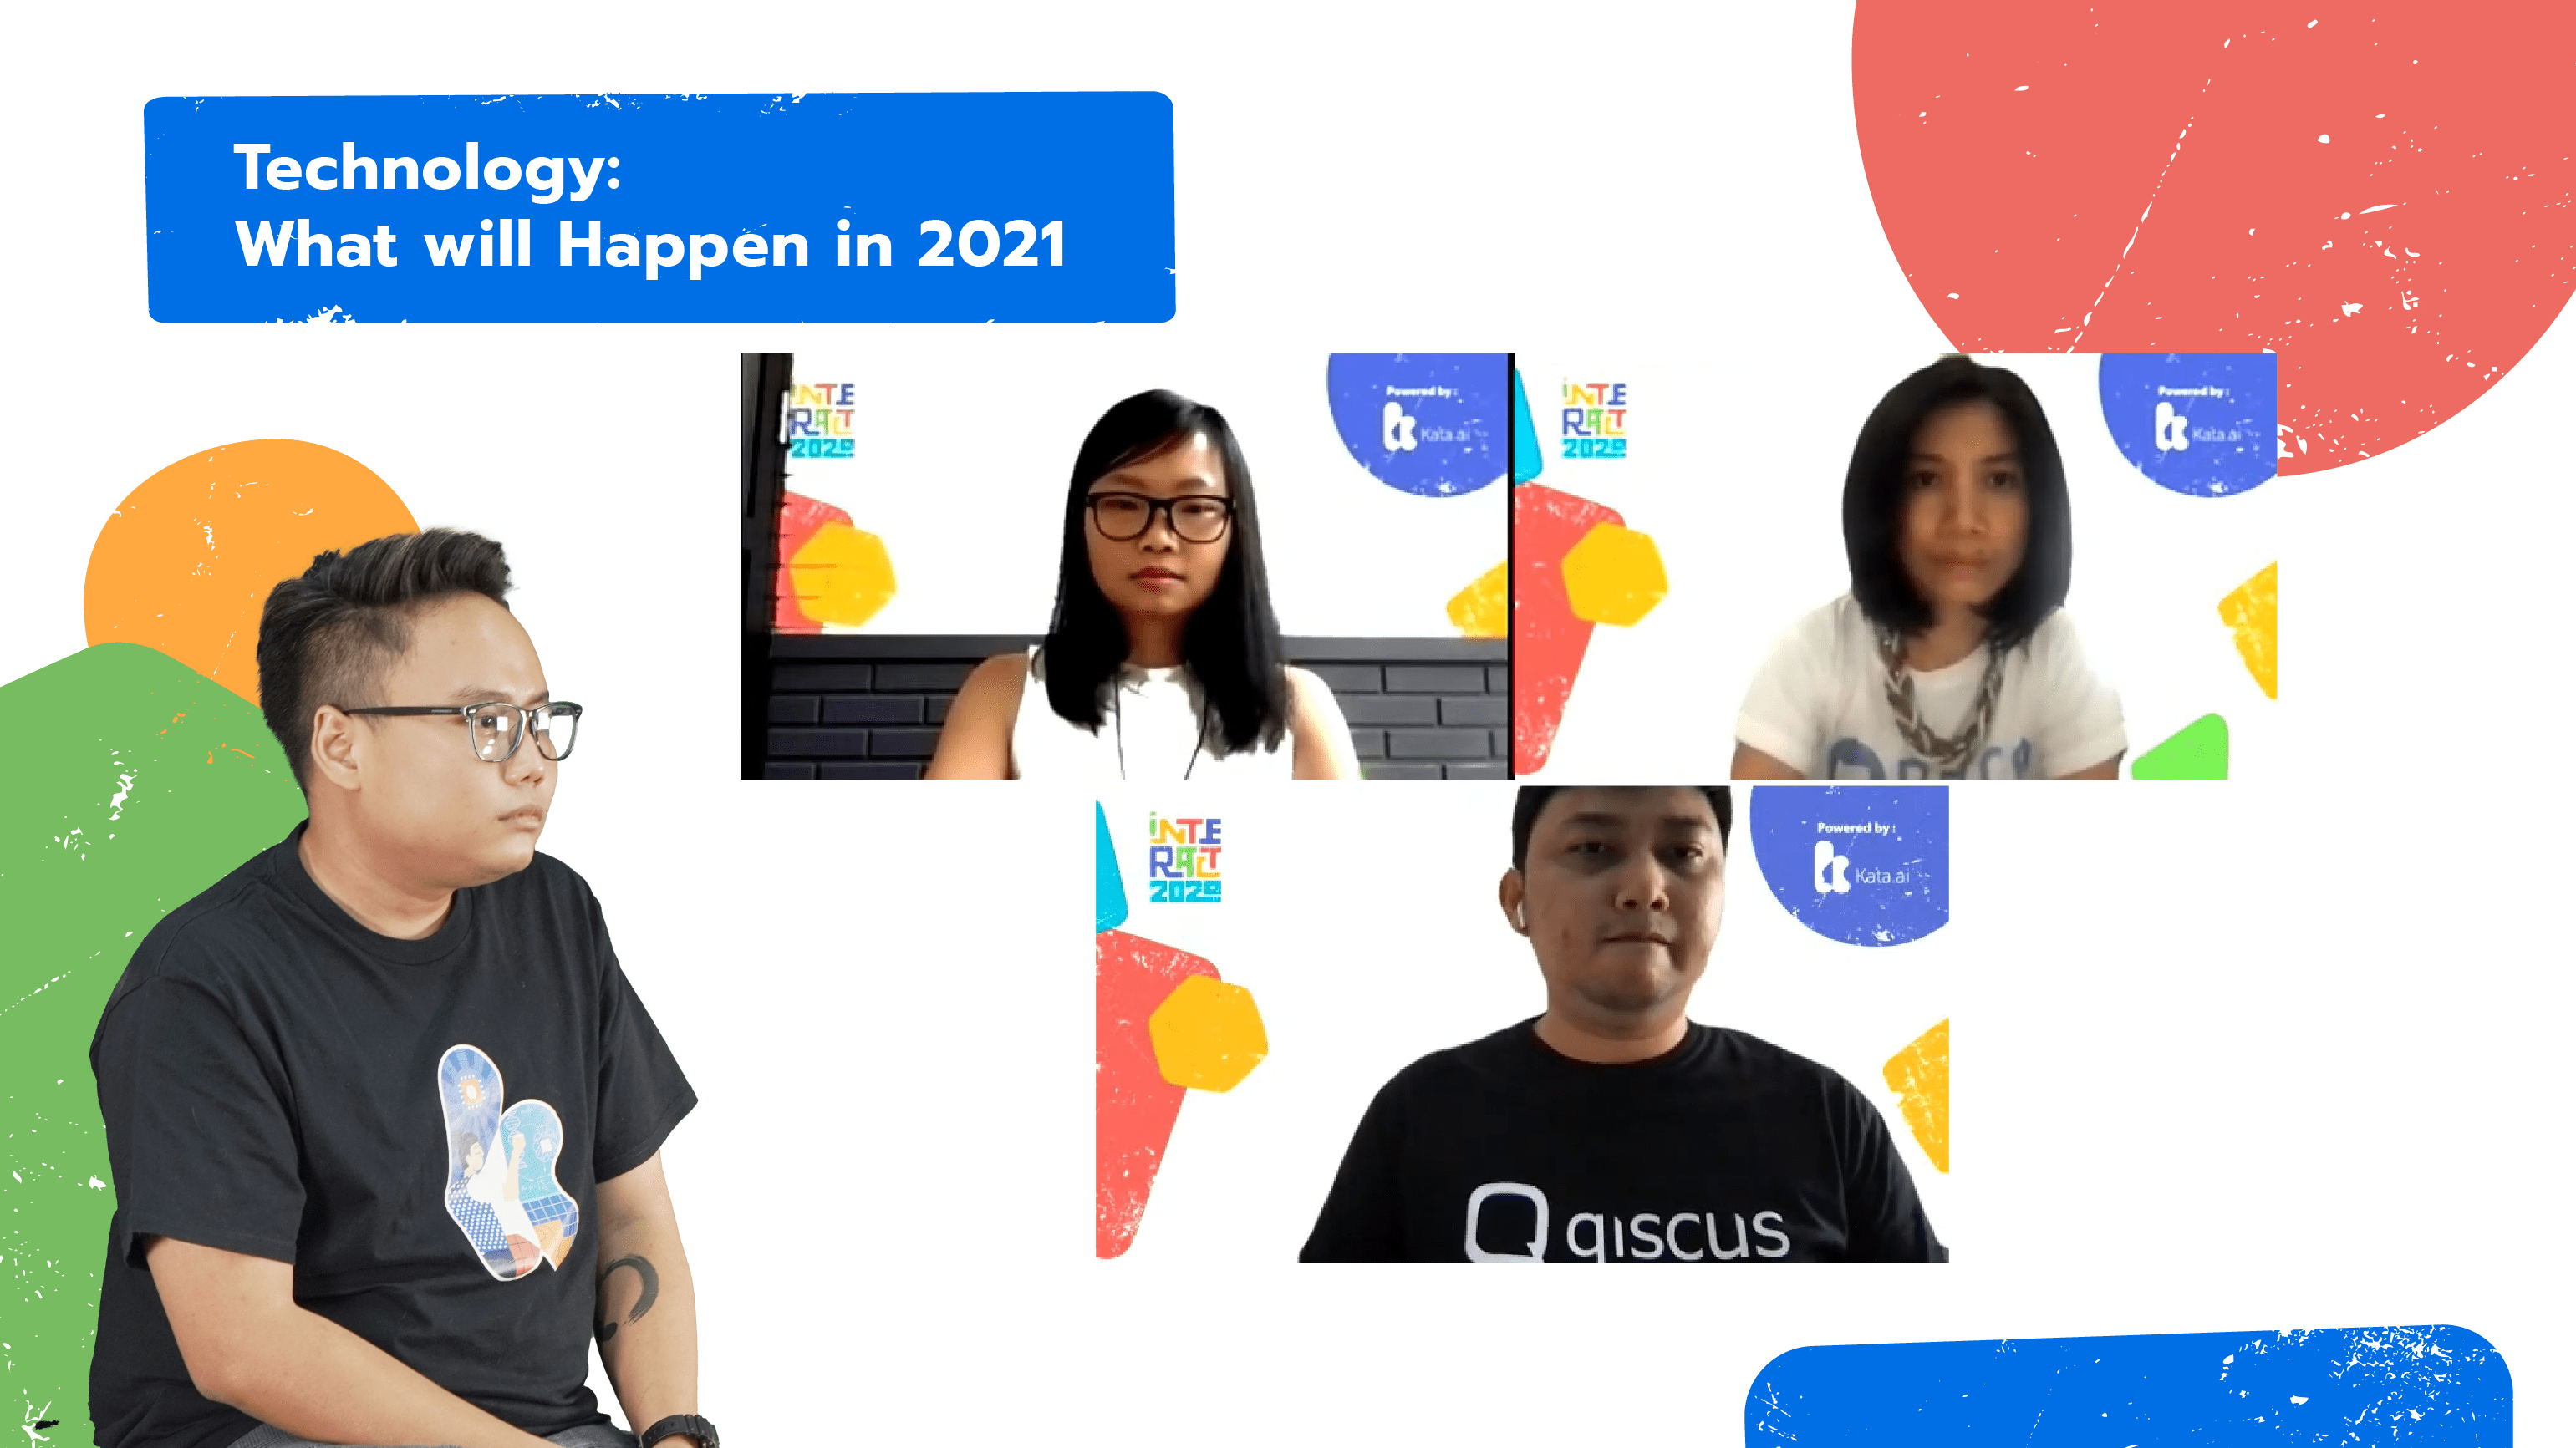 INTERACT 2020's second panel session discussed upcoming technology and business challenges in 2021 with ScrapingHub Solution Architect Team Lead Theresia Tanzil, Qiscus CTO Evan Purnama, and DANA Indonesia VP of Engineering Ignatia Suwarna.